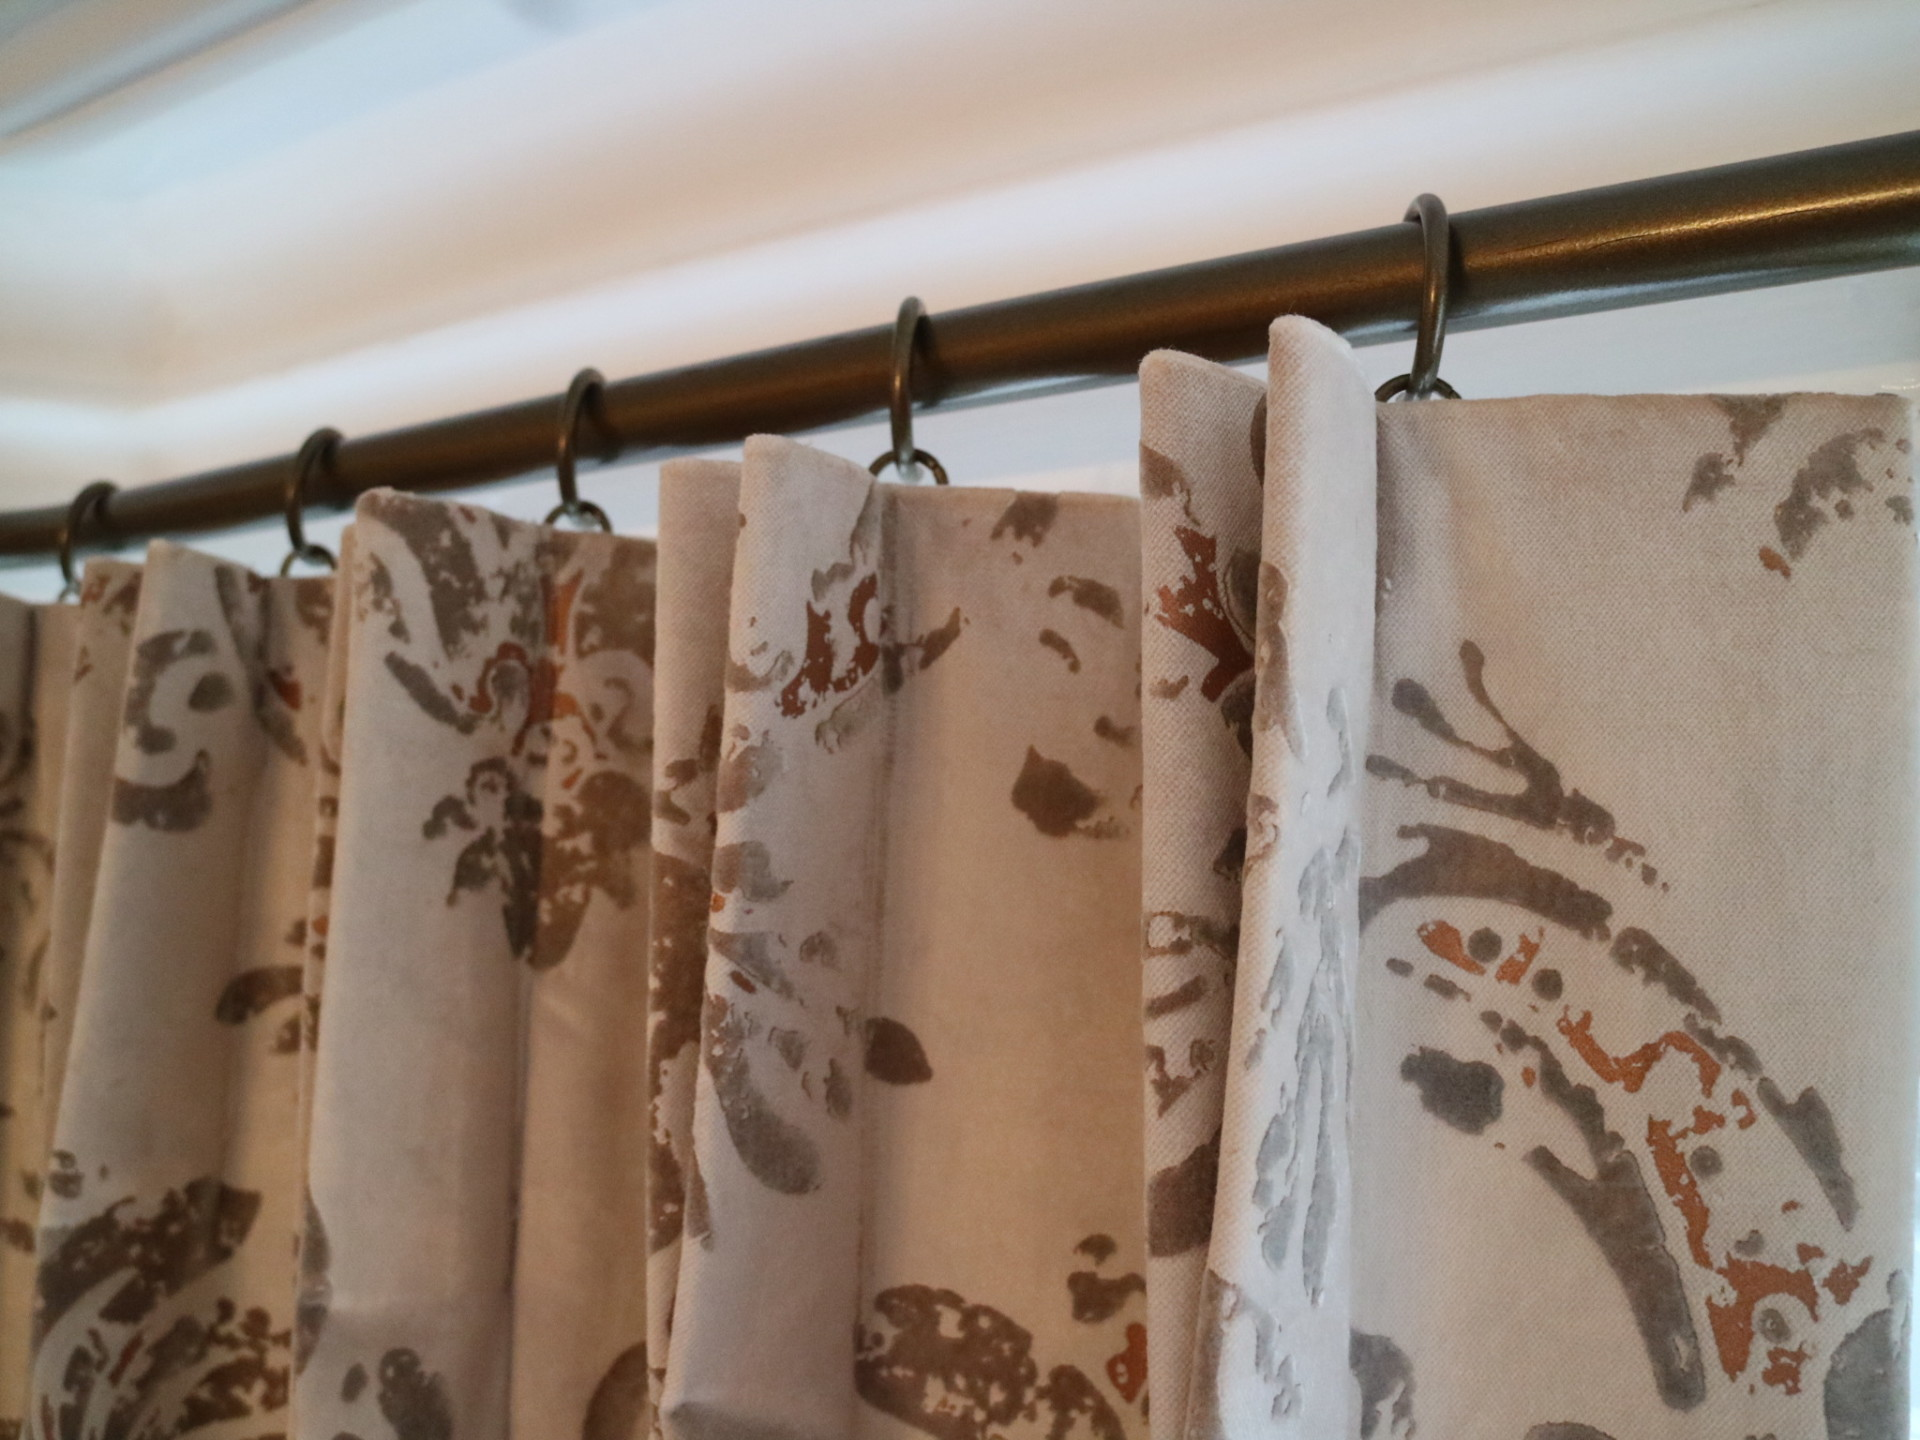 French Pleat Curtains in Thames Ditton